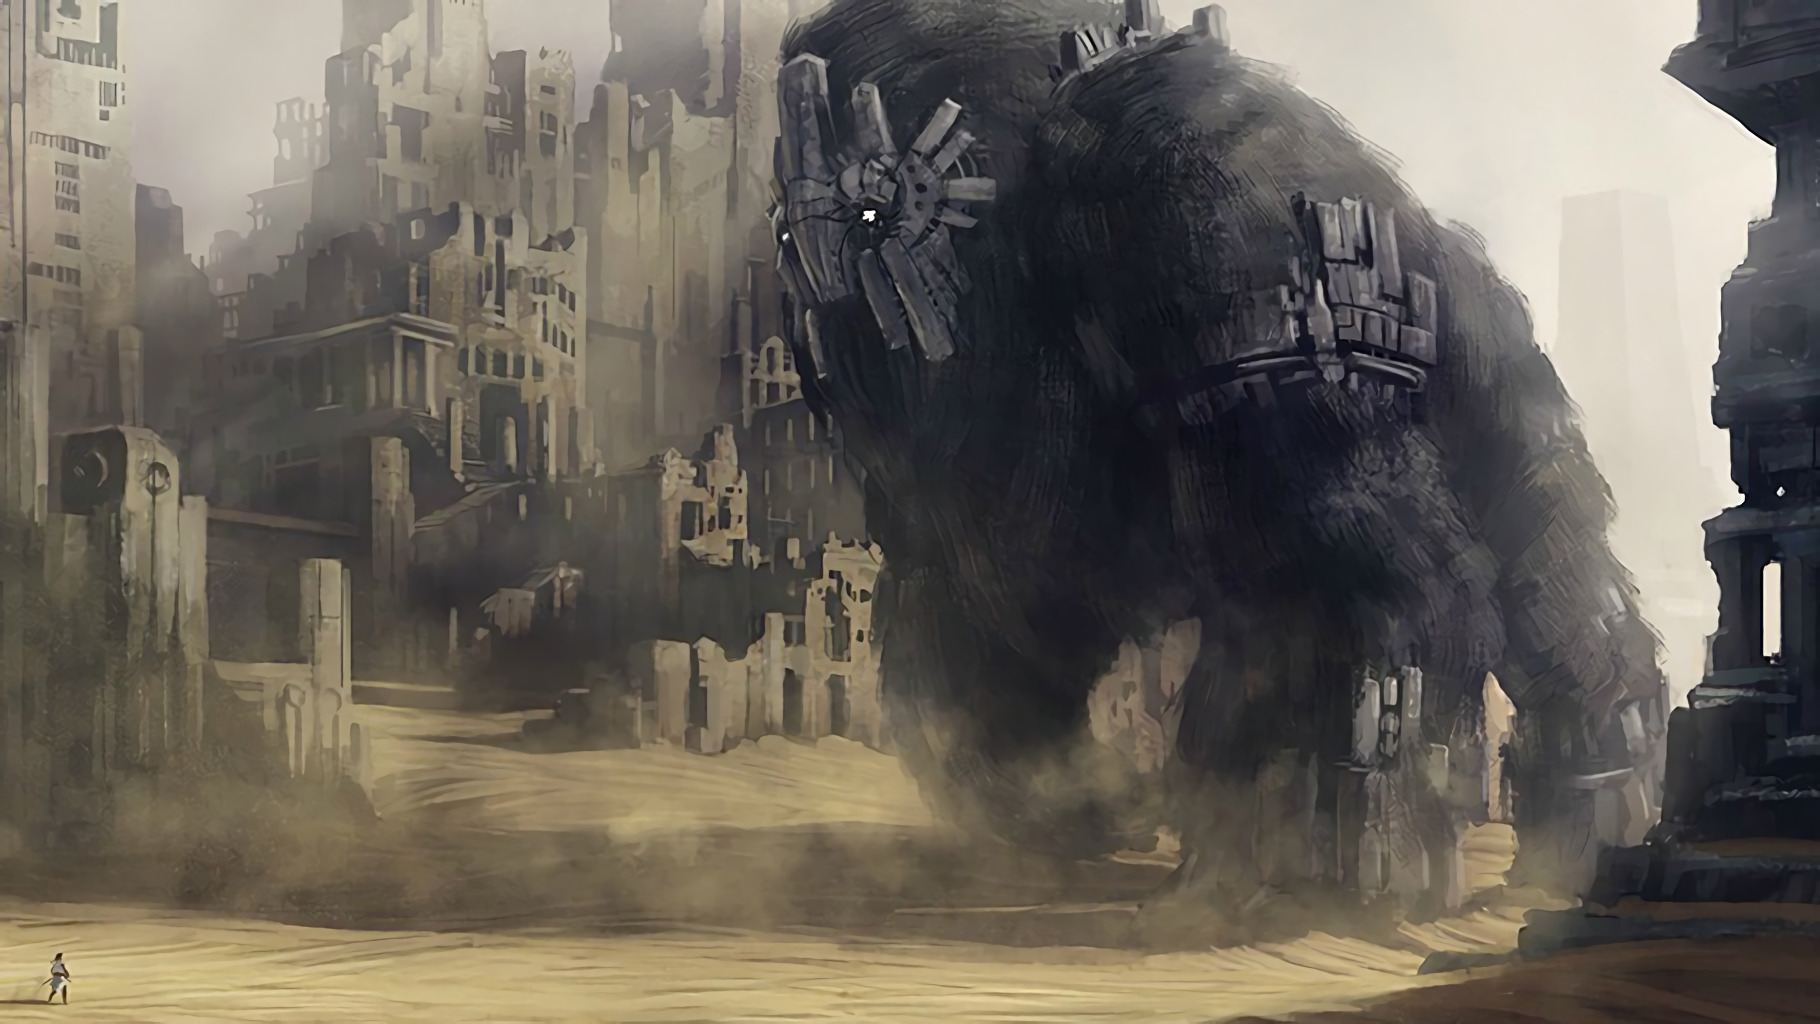 Shadow of the colossus artwork wallpapers hd desktop - Shadow of the colossus iphone wallpaper ...